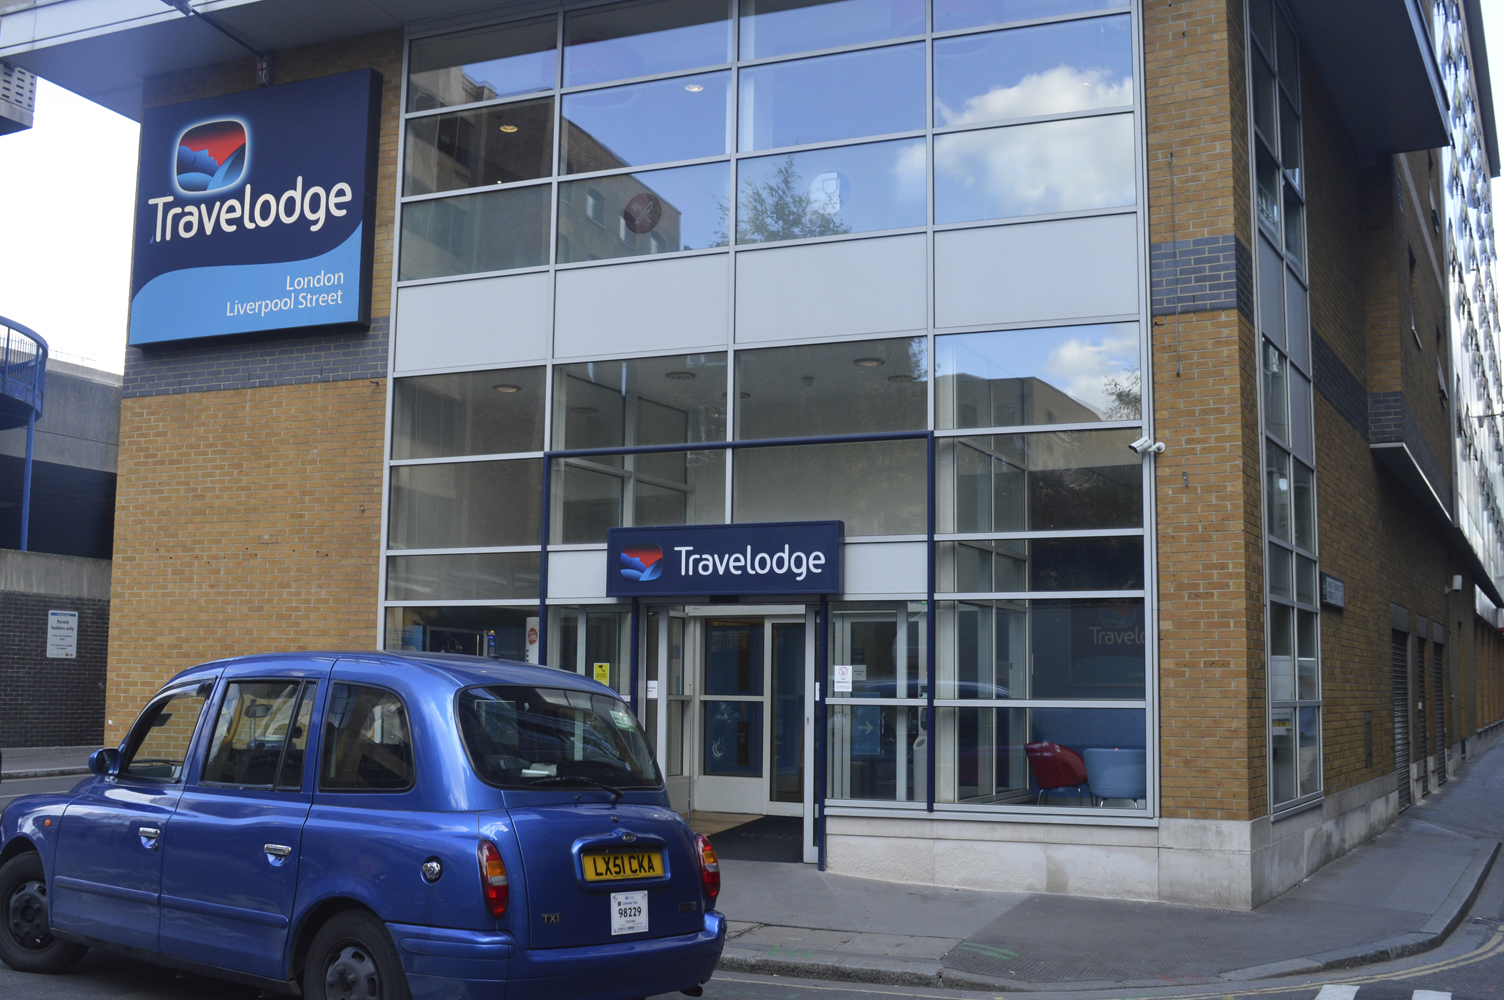 071 Travelodge. In The City. 25.09.2015